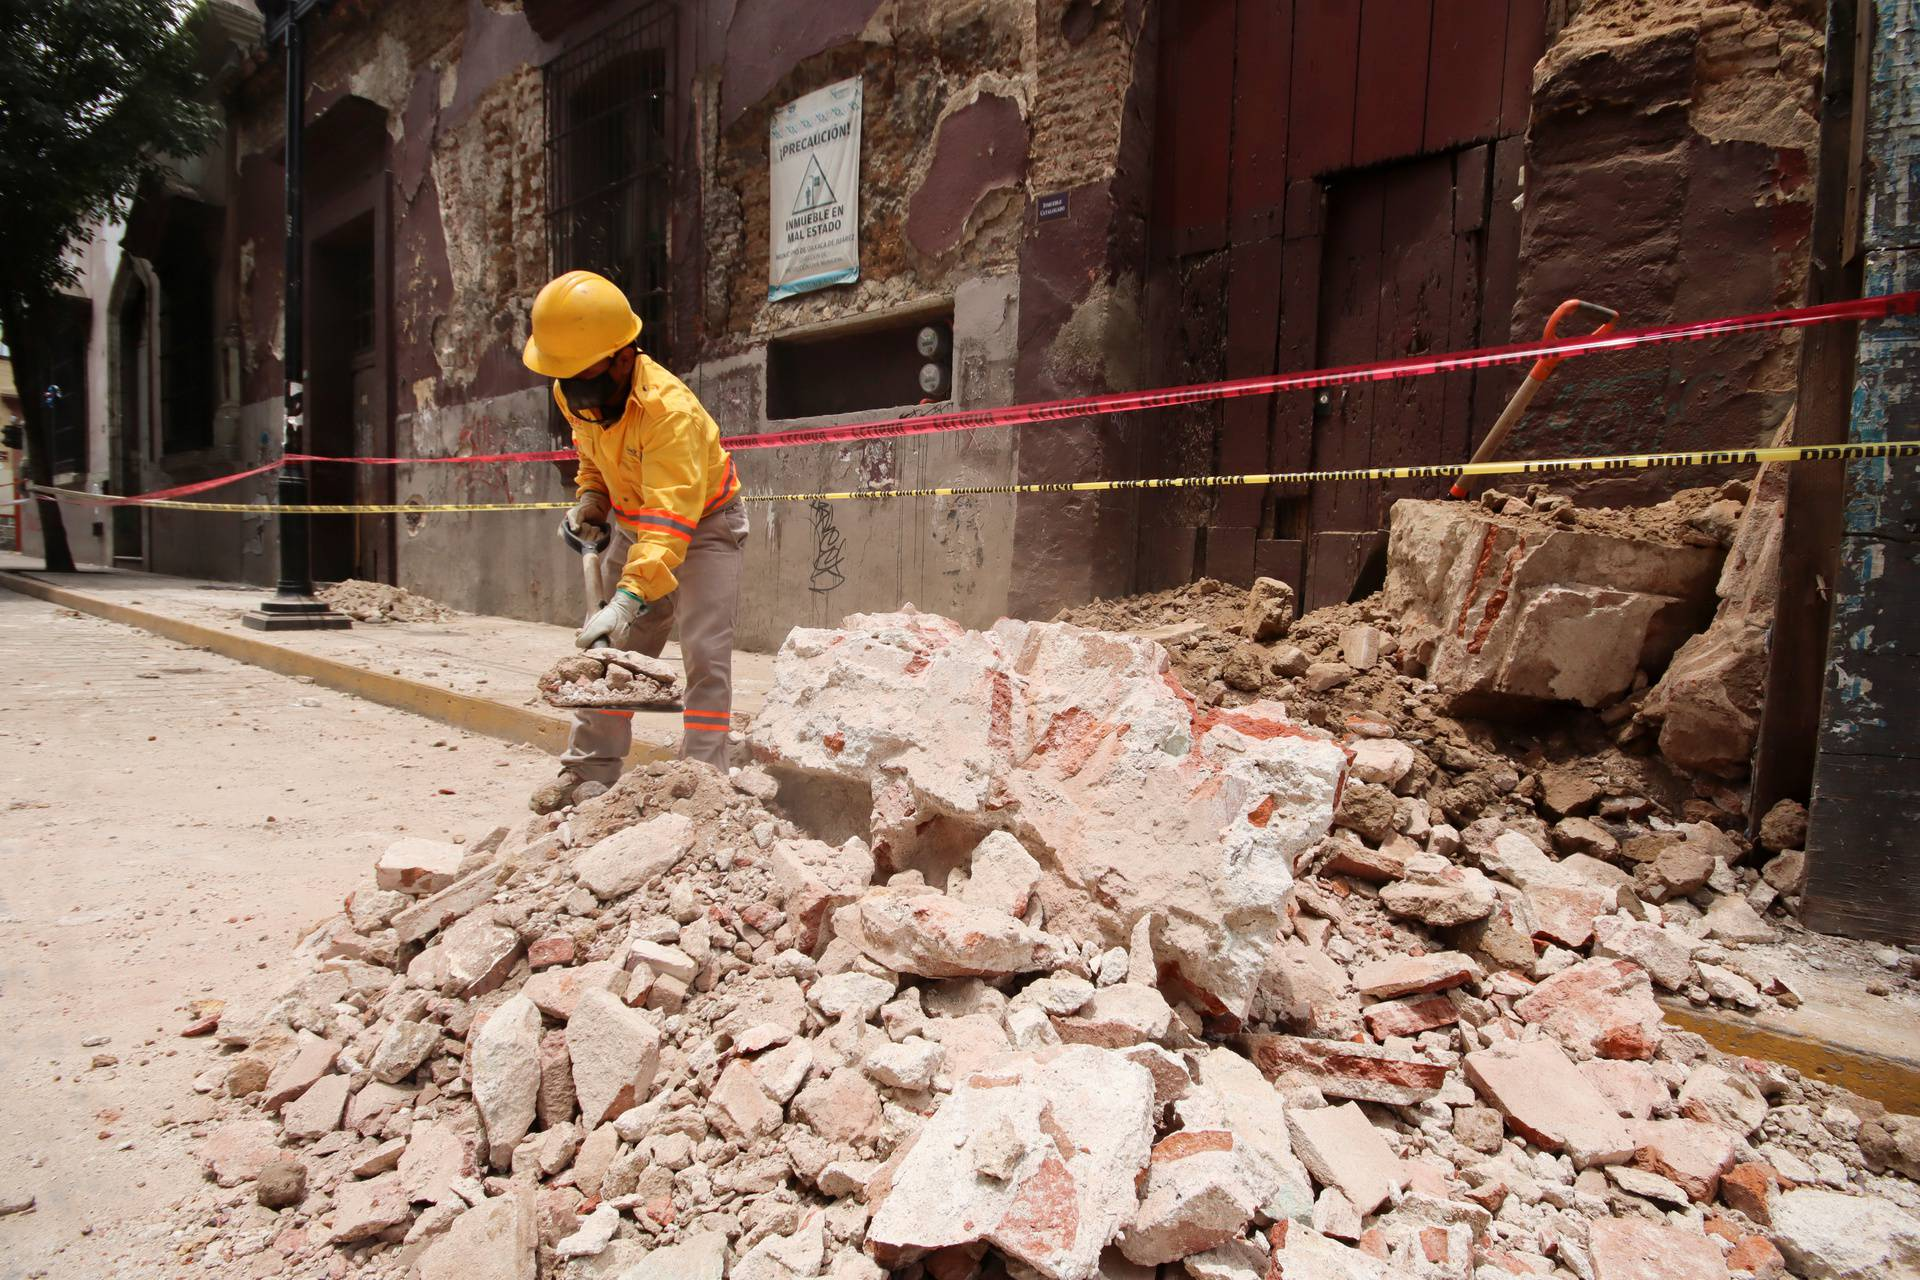 A worker removes debris from a building damaged during a quake, in Oaxaca